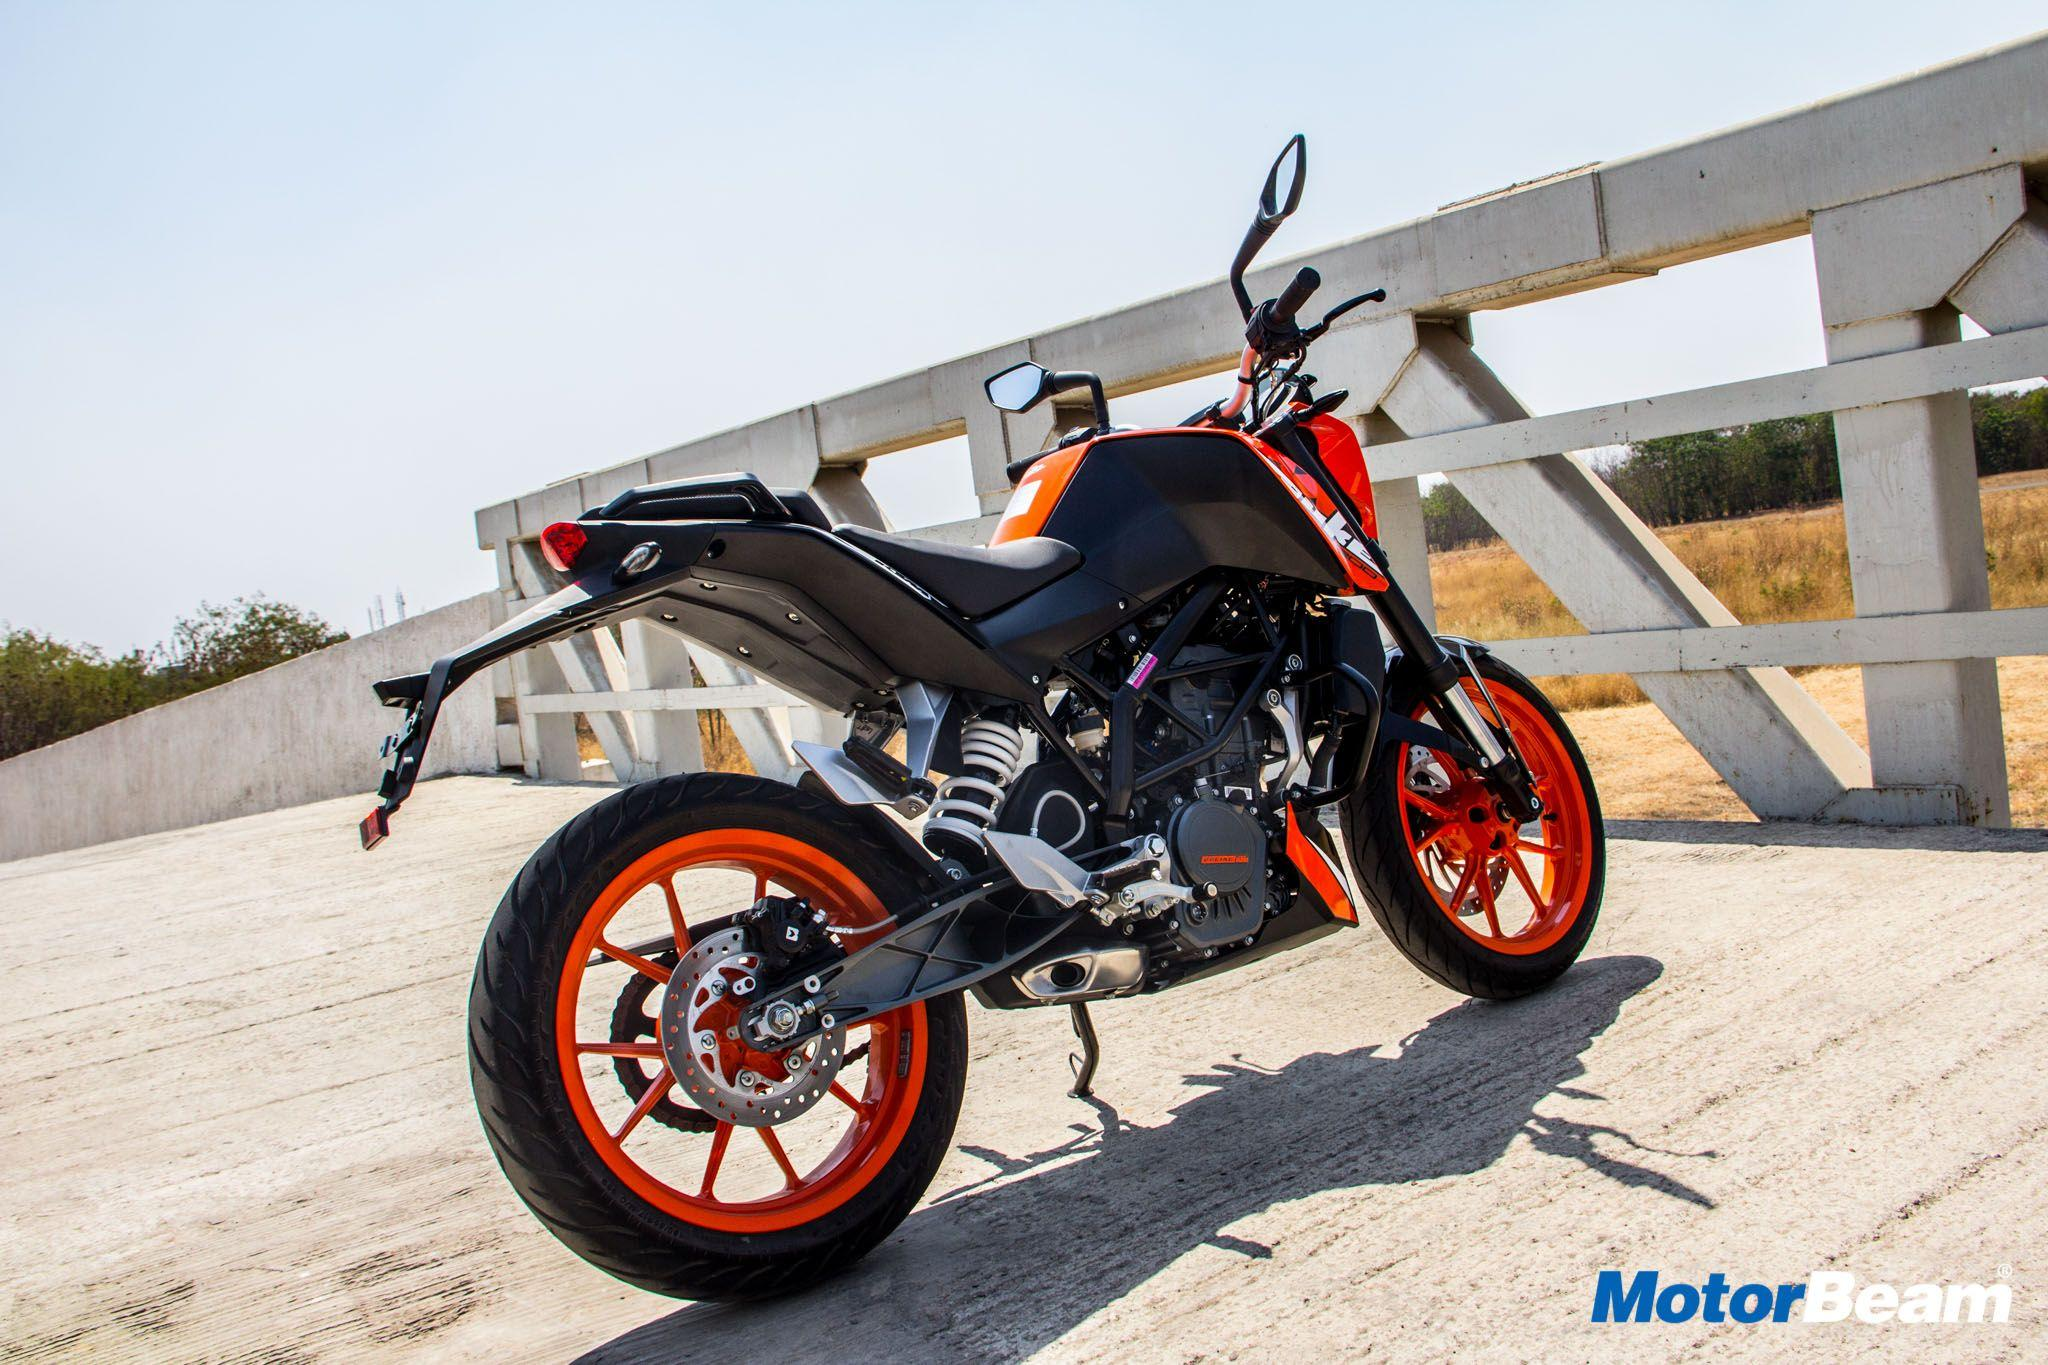 KTM Duke 200 Price, Review, Mileage, Features, Specifications